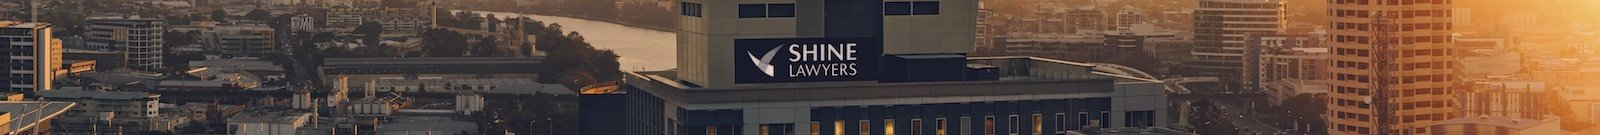 Shine Lawyers | Lawyers in Geelong | Shine Lawyers